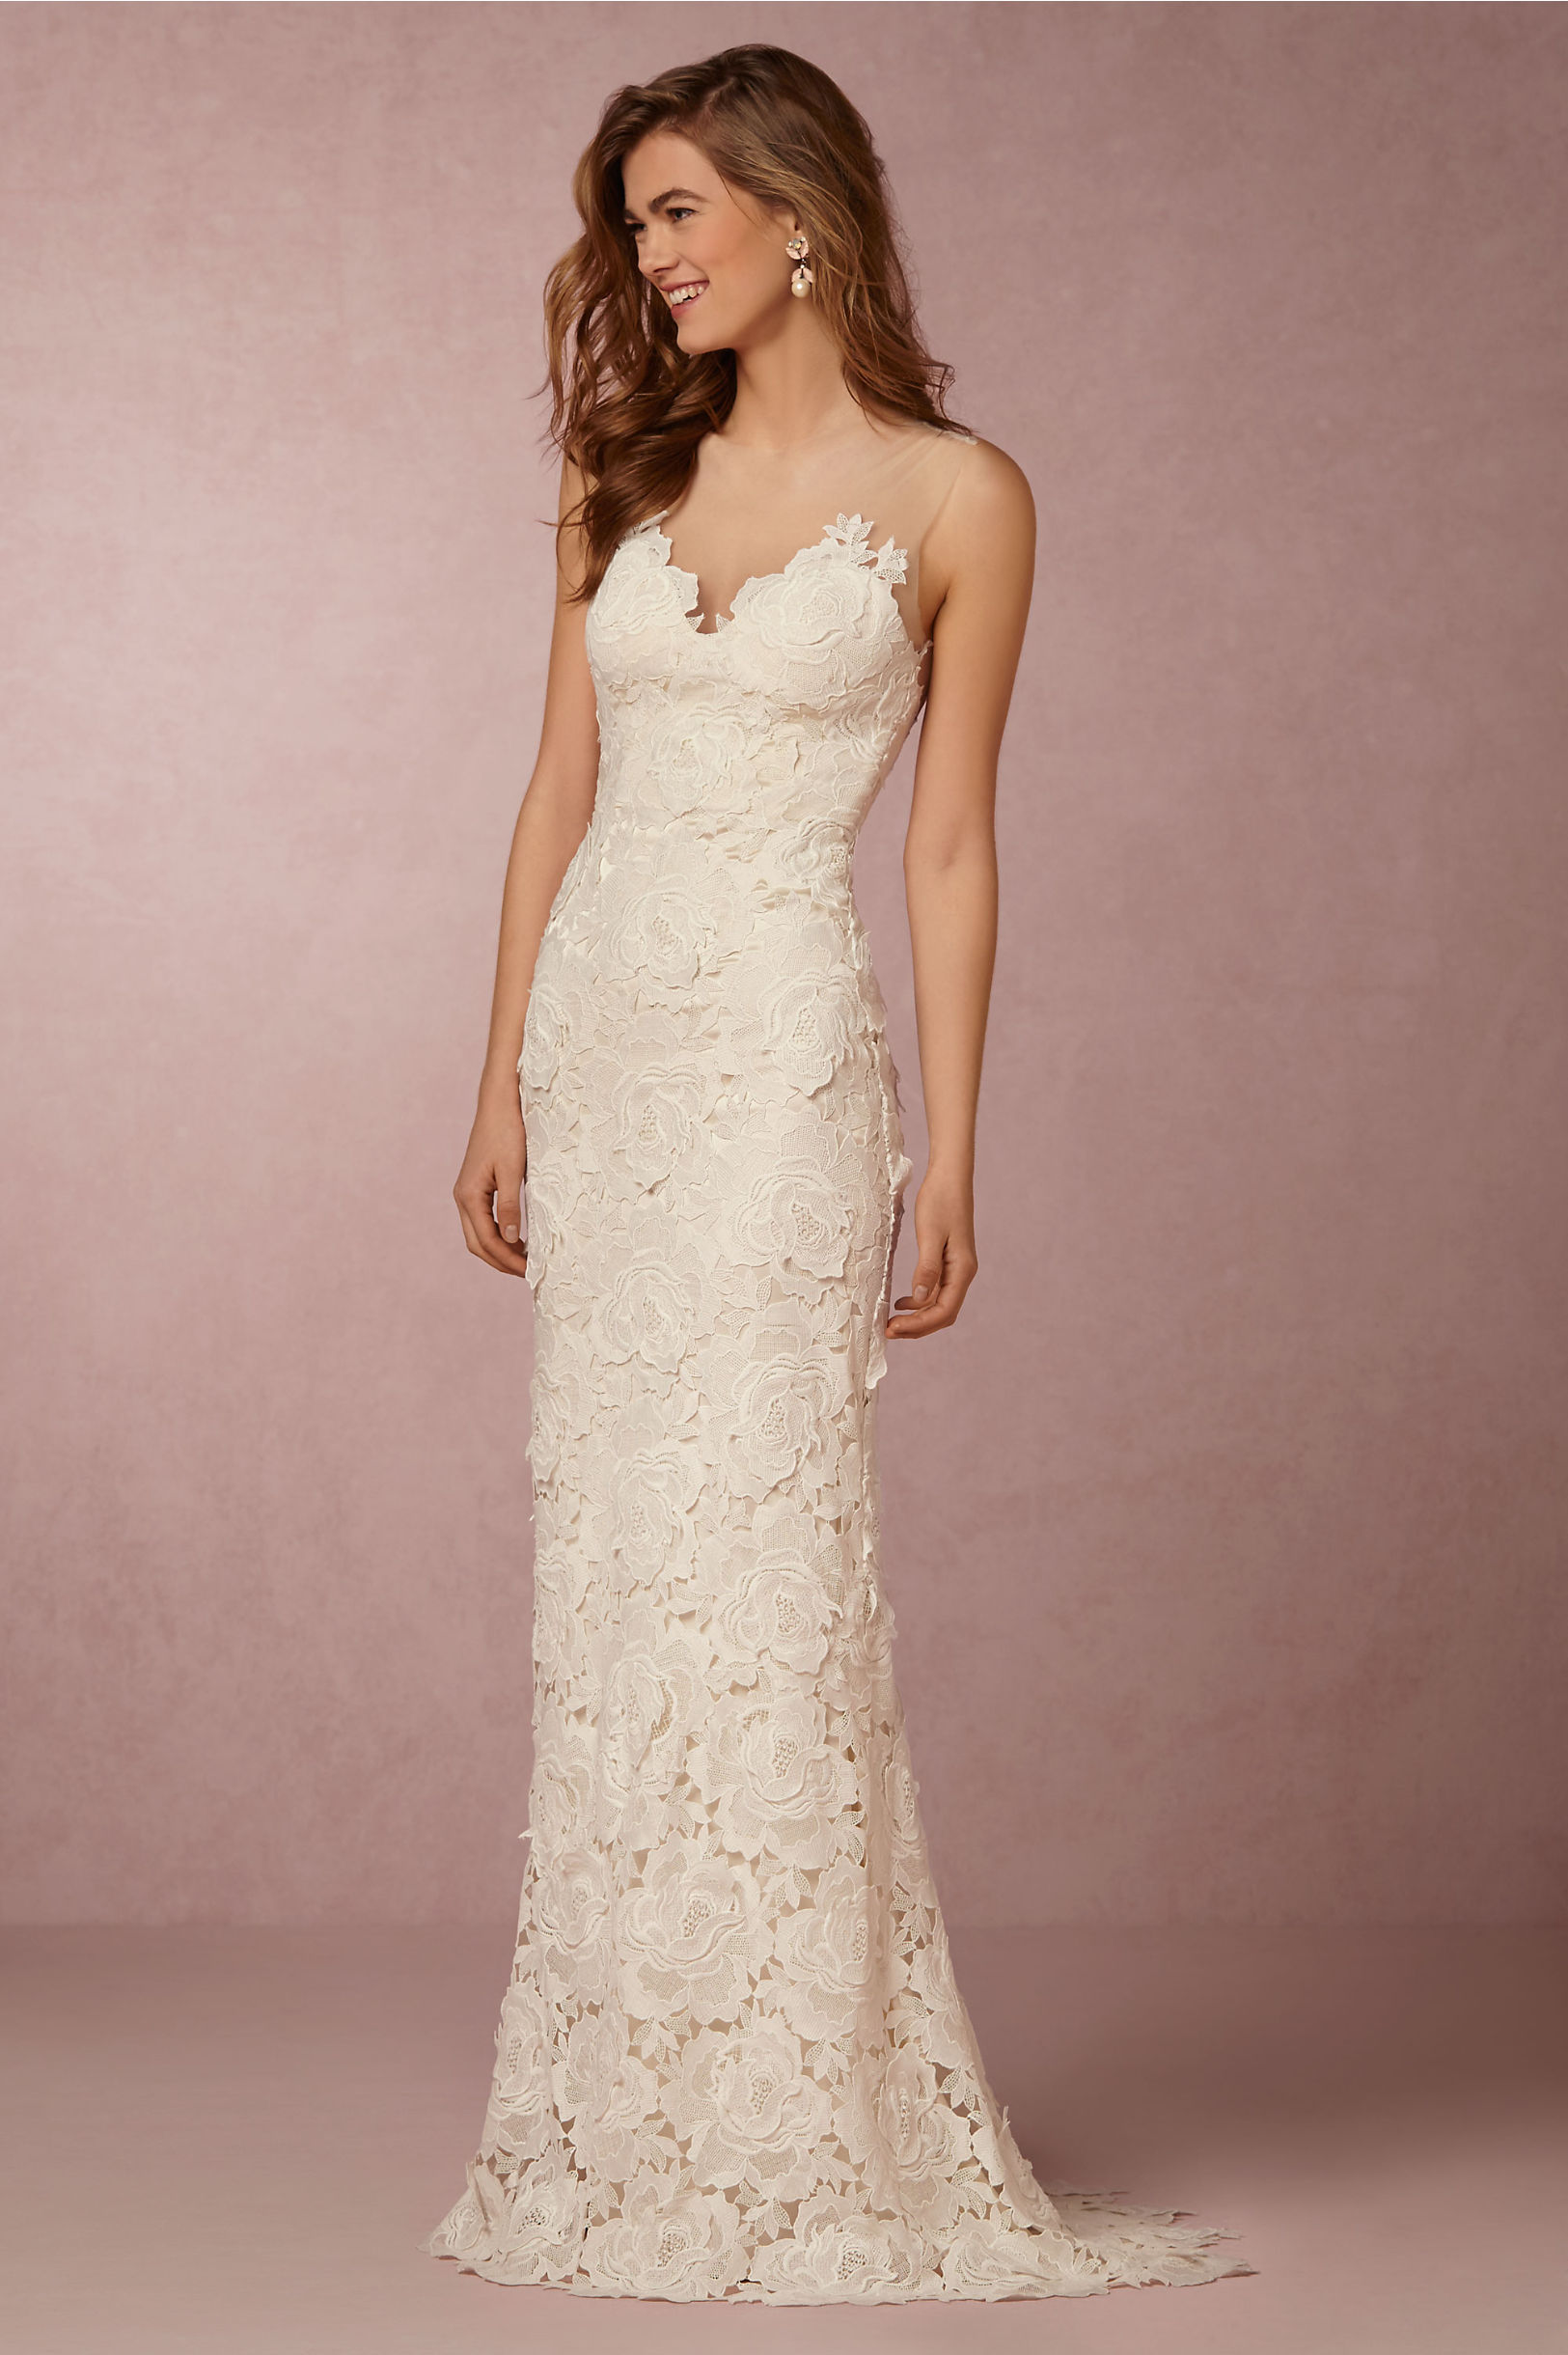 Department Store Wedding Dresses